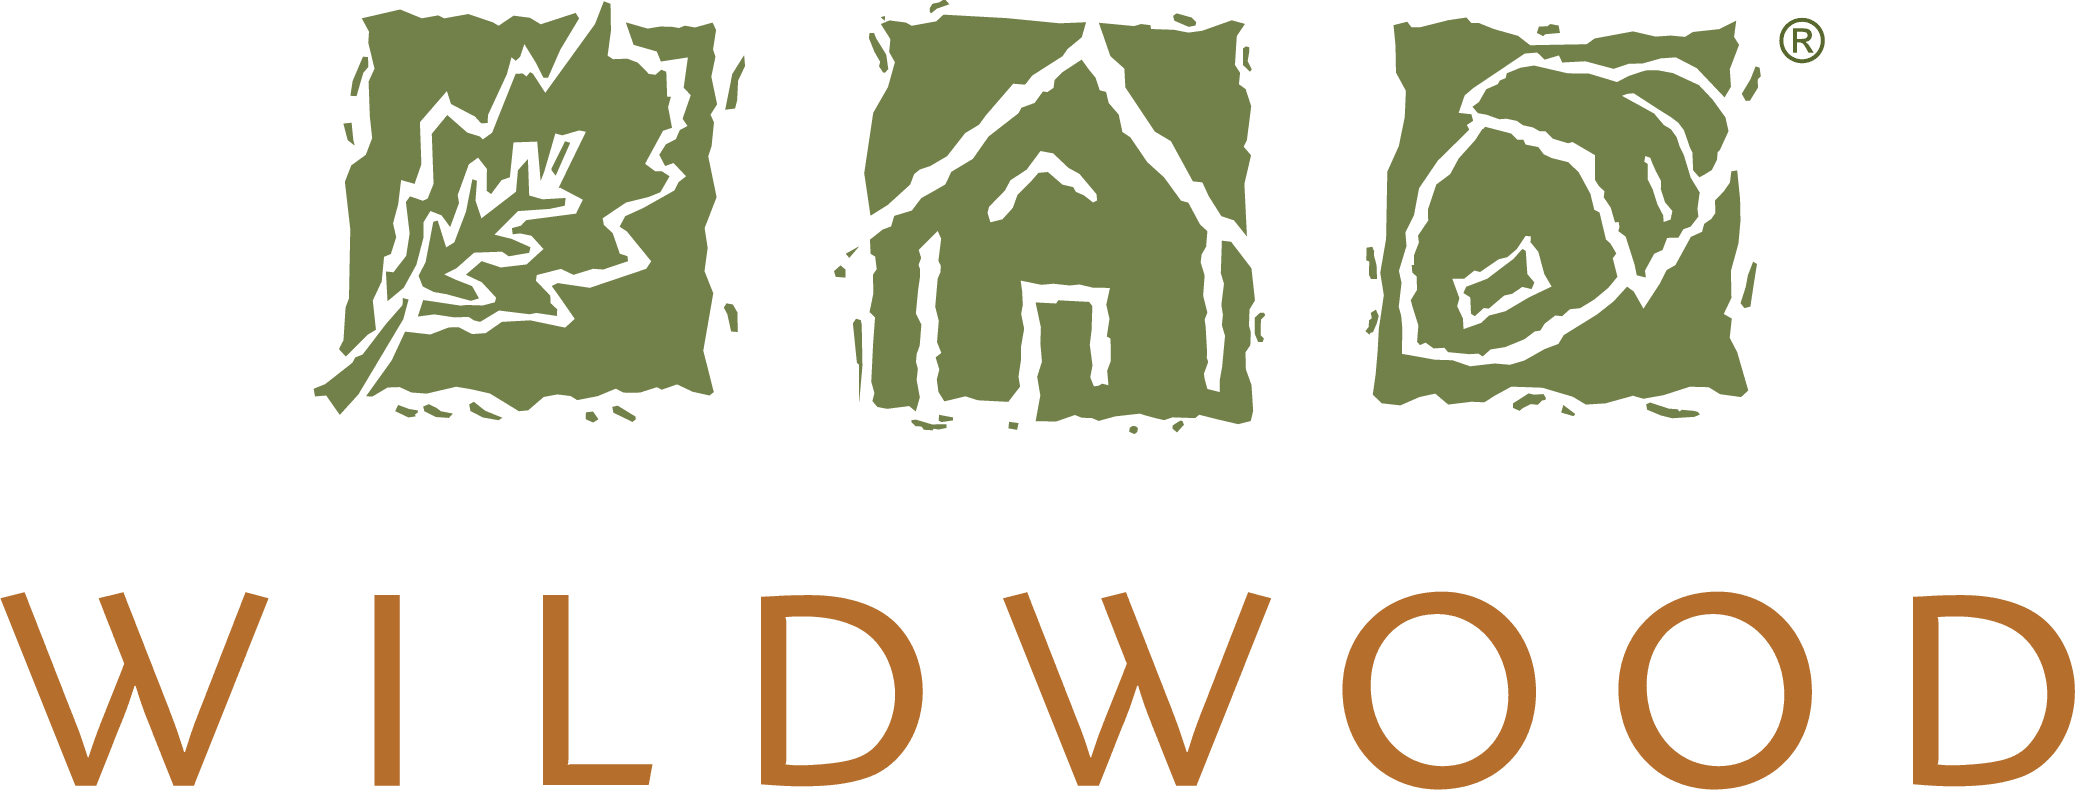 Wildwood Logo - Color Transparent